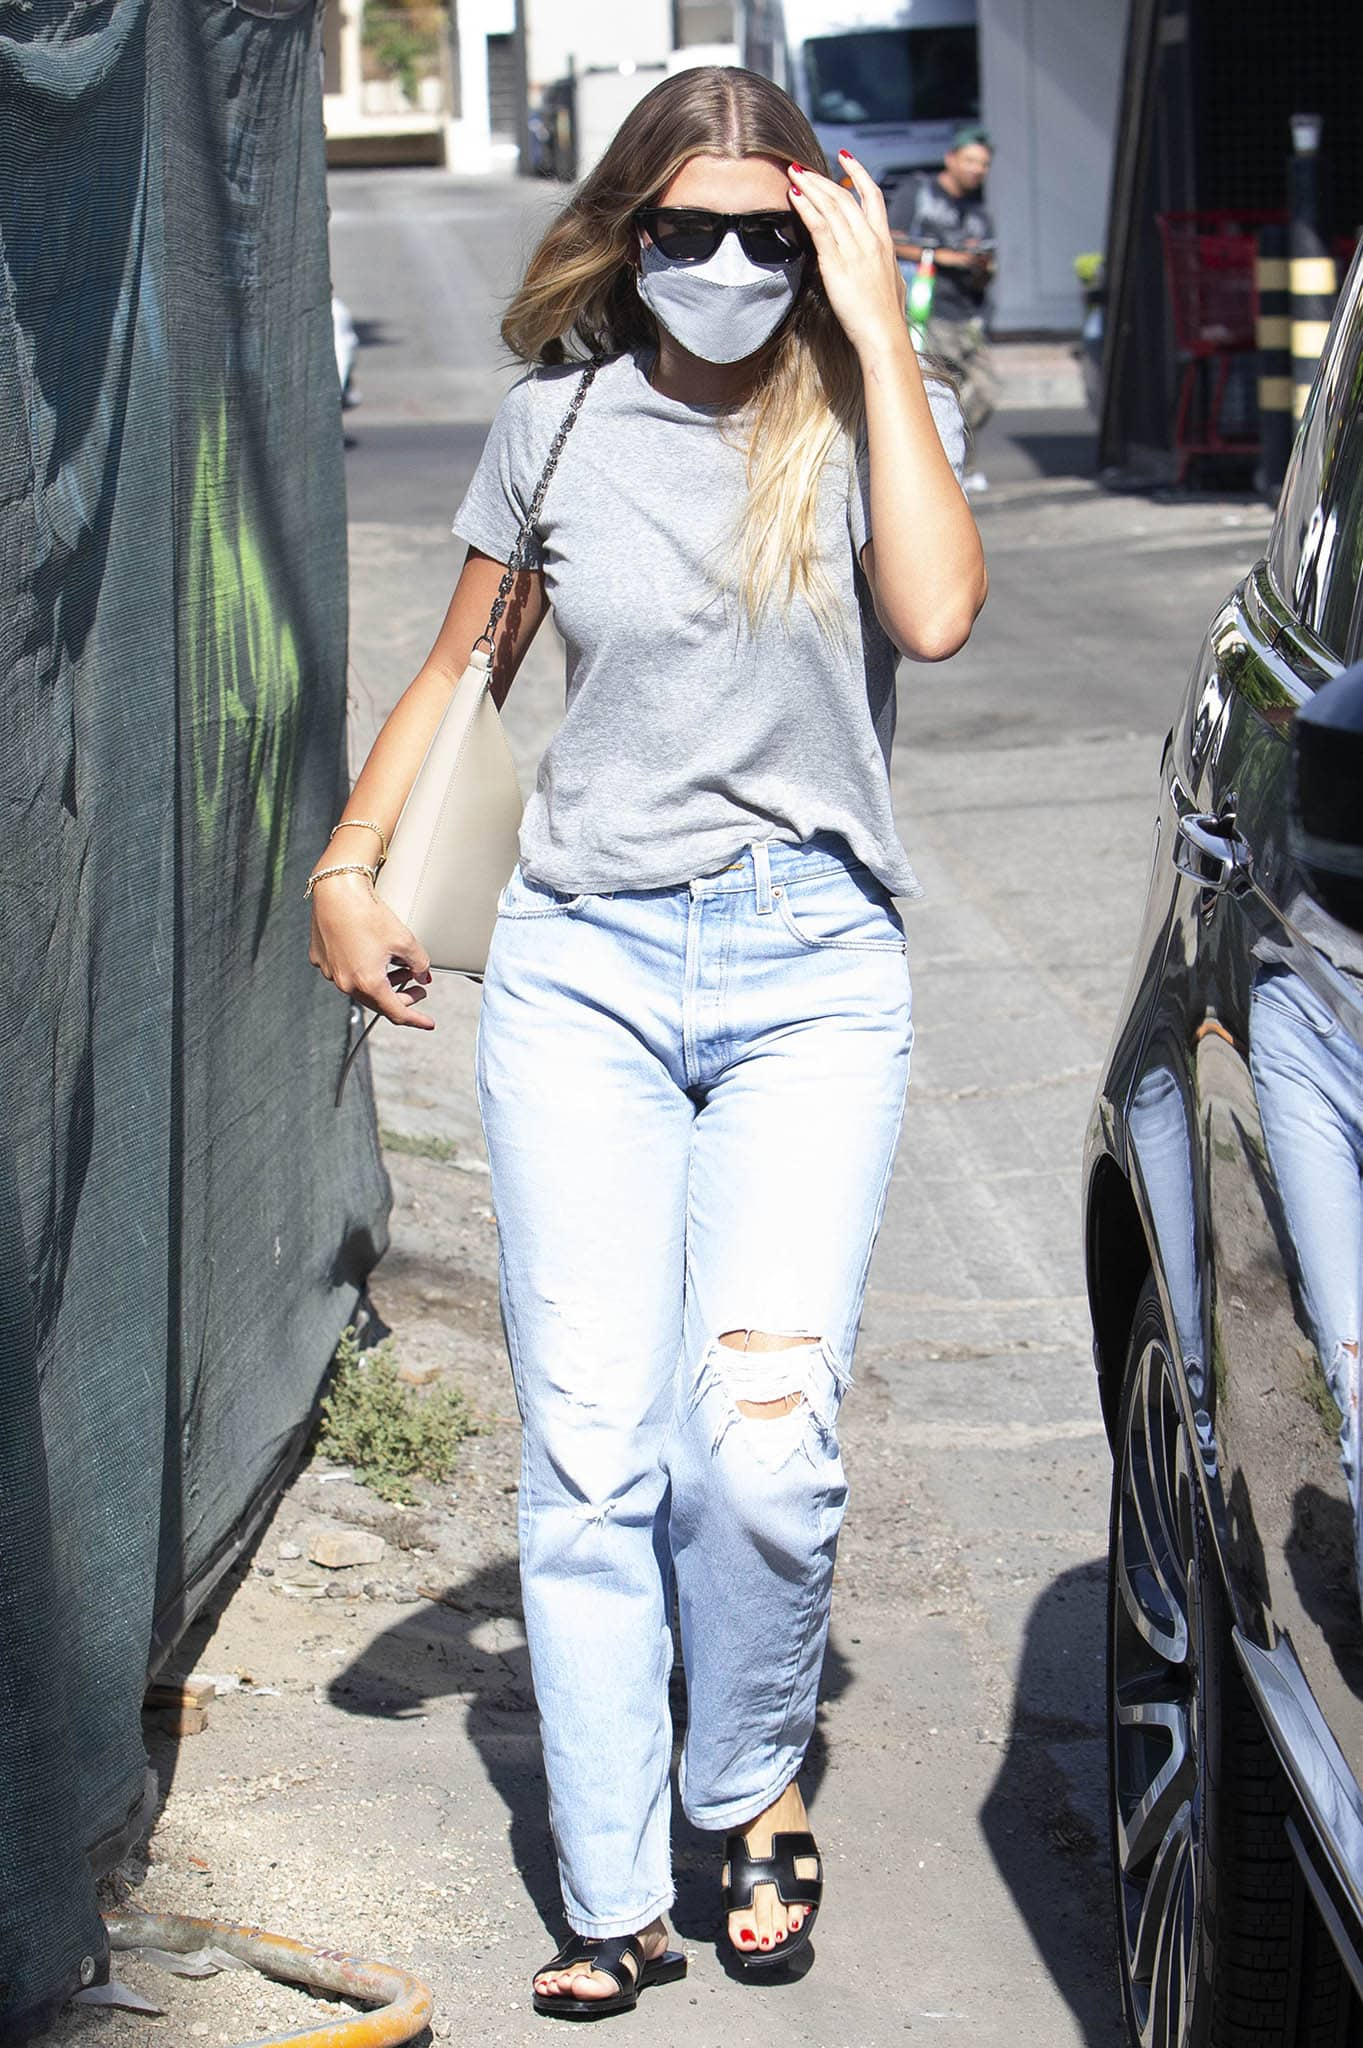 Sofia Richie teams a plain gray tee with ripped mom jeans